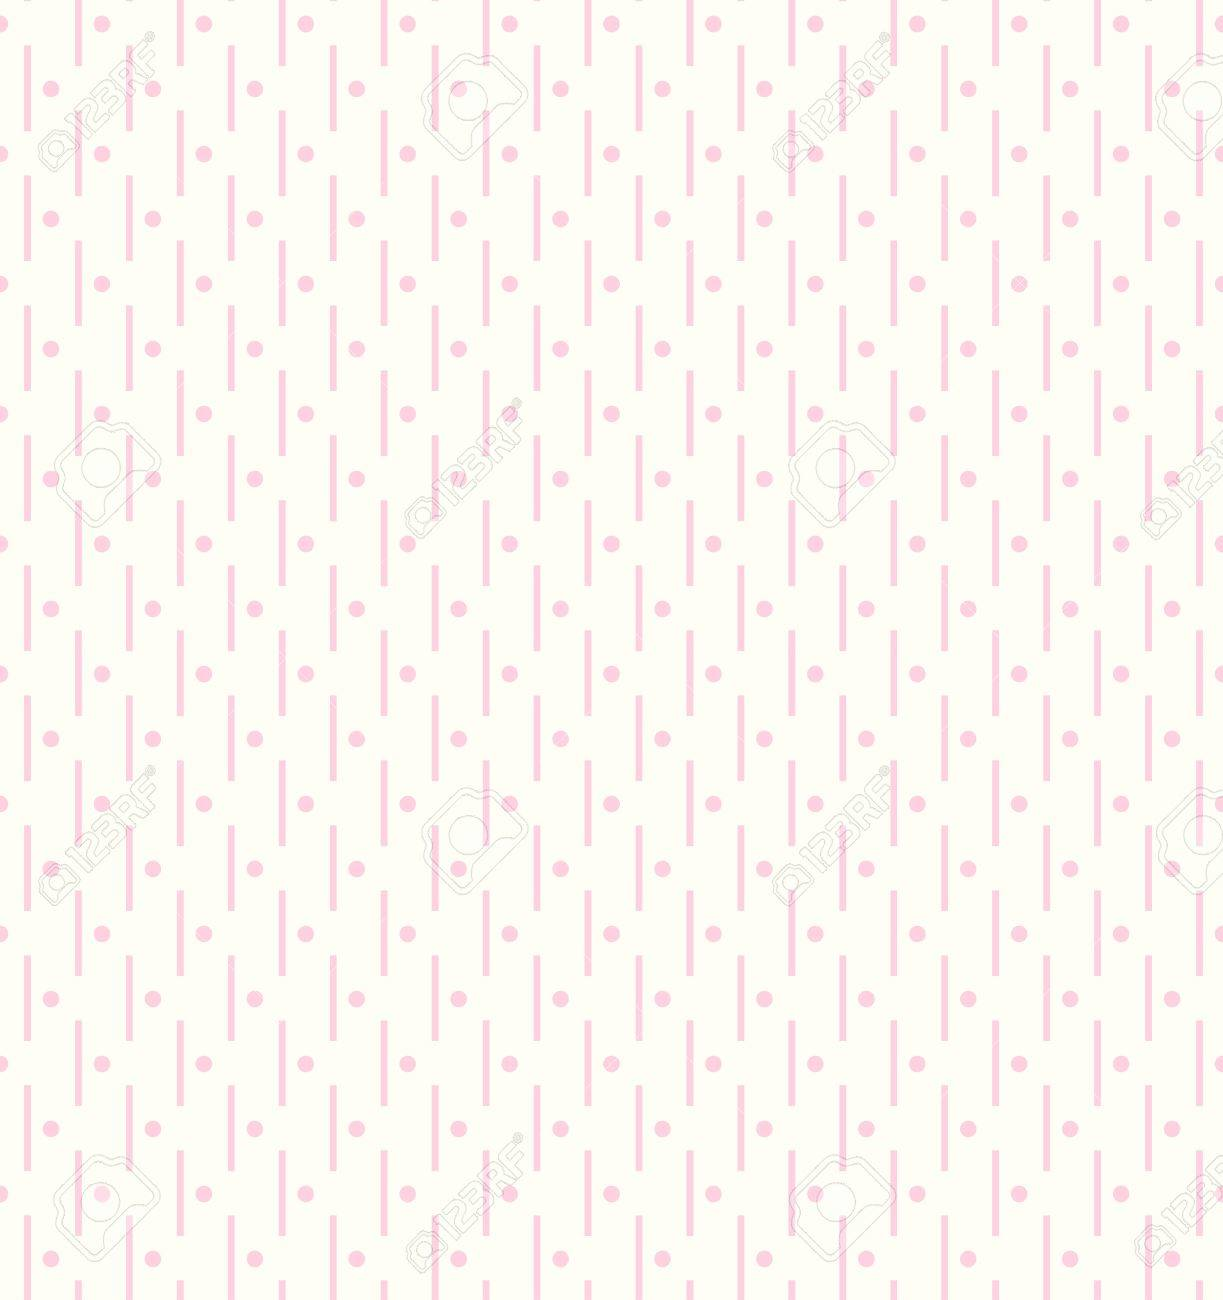 Pastel Seamless Patterns Gentle Simple Concise Patterns 1223x1300